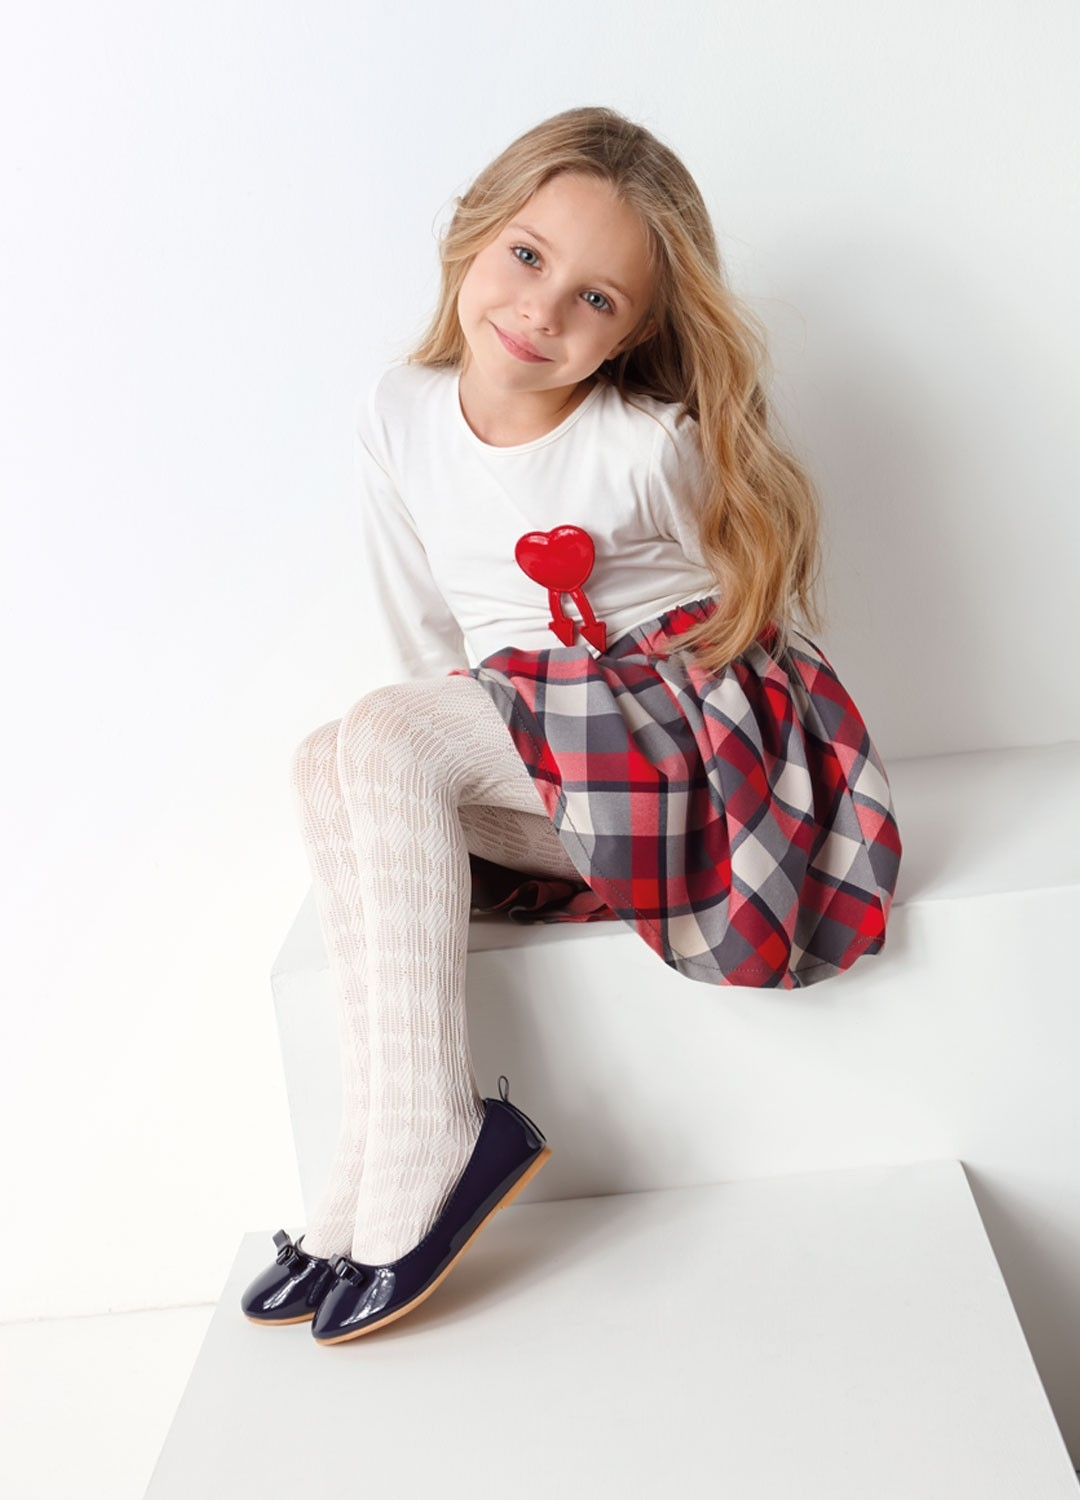 The Children's Place has the widest collection of girls leggings. Shop at the PLACE where big fashion meets little prices! The Children's Place has the widest collection of girls leggings. Shop at the PLACE where big fashion meets little prices! Back to top Top. Skip to Content Find a Store.